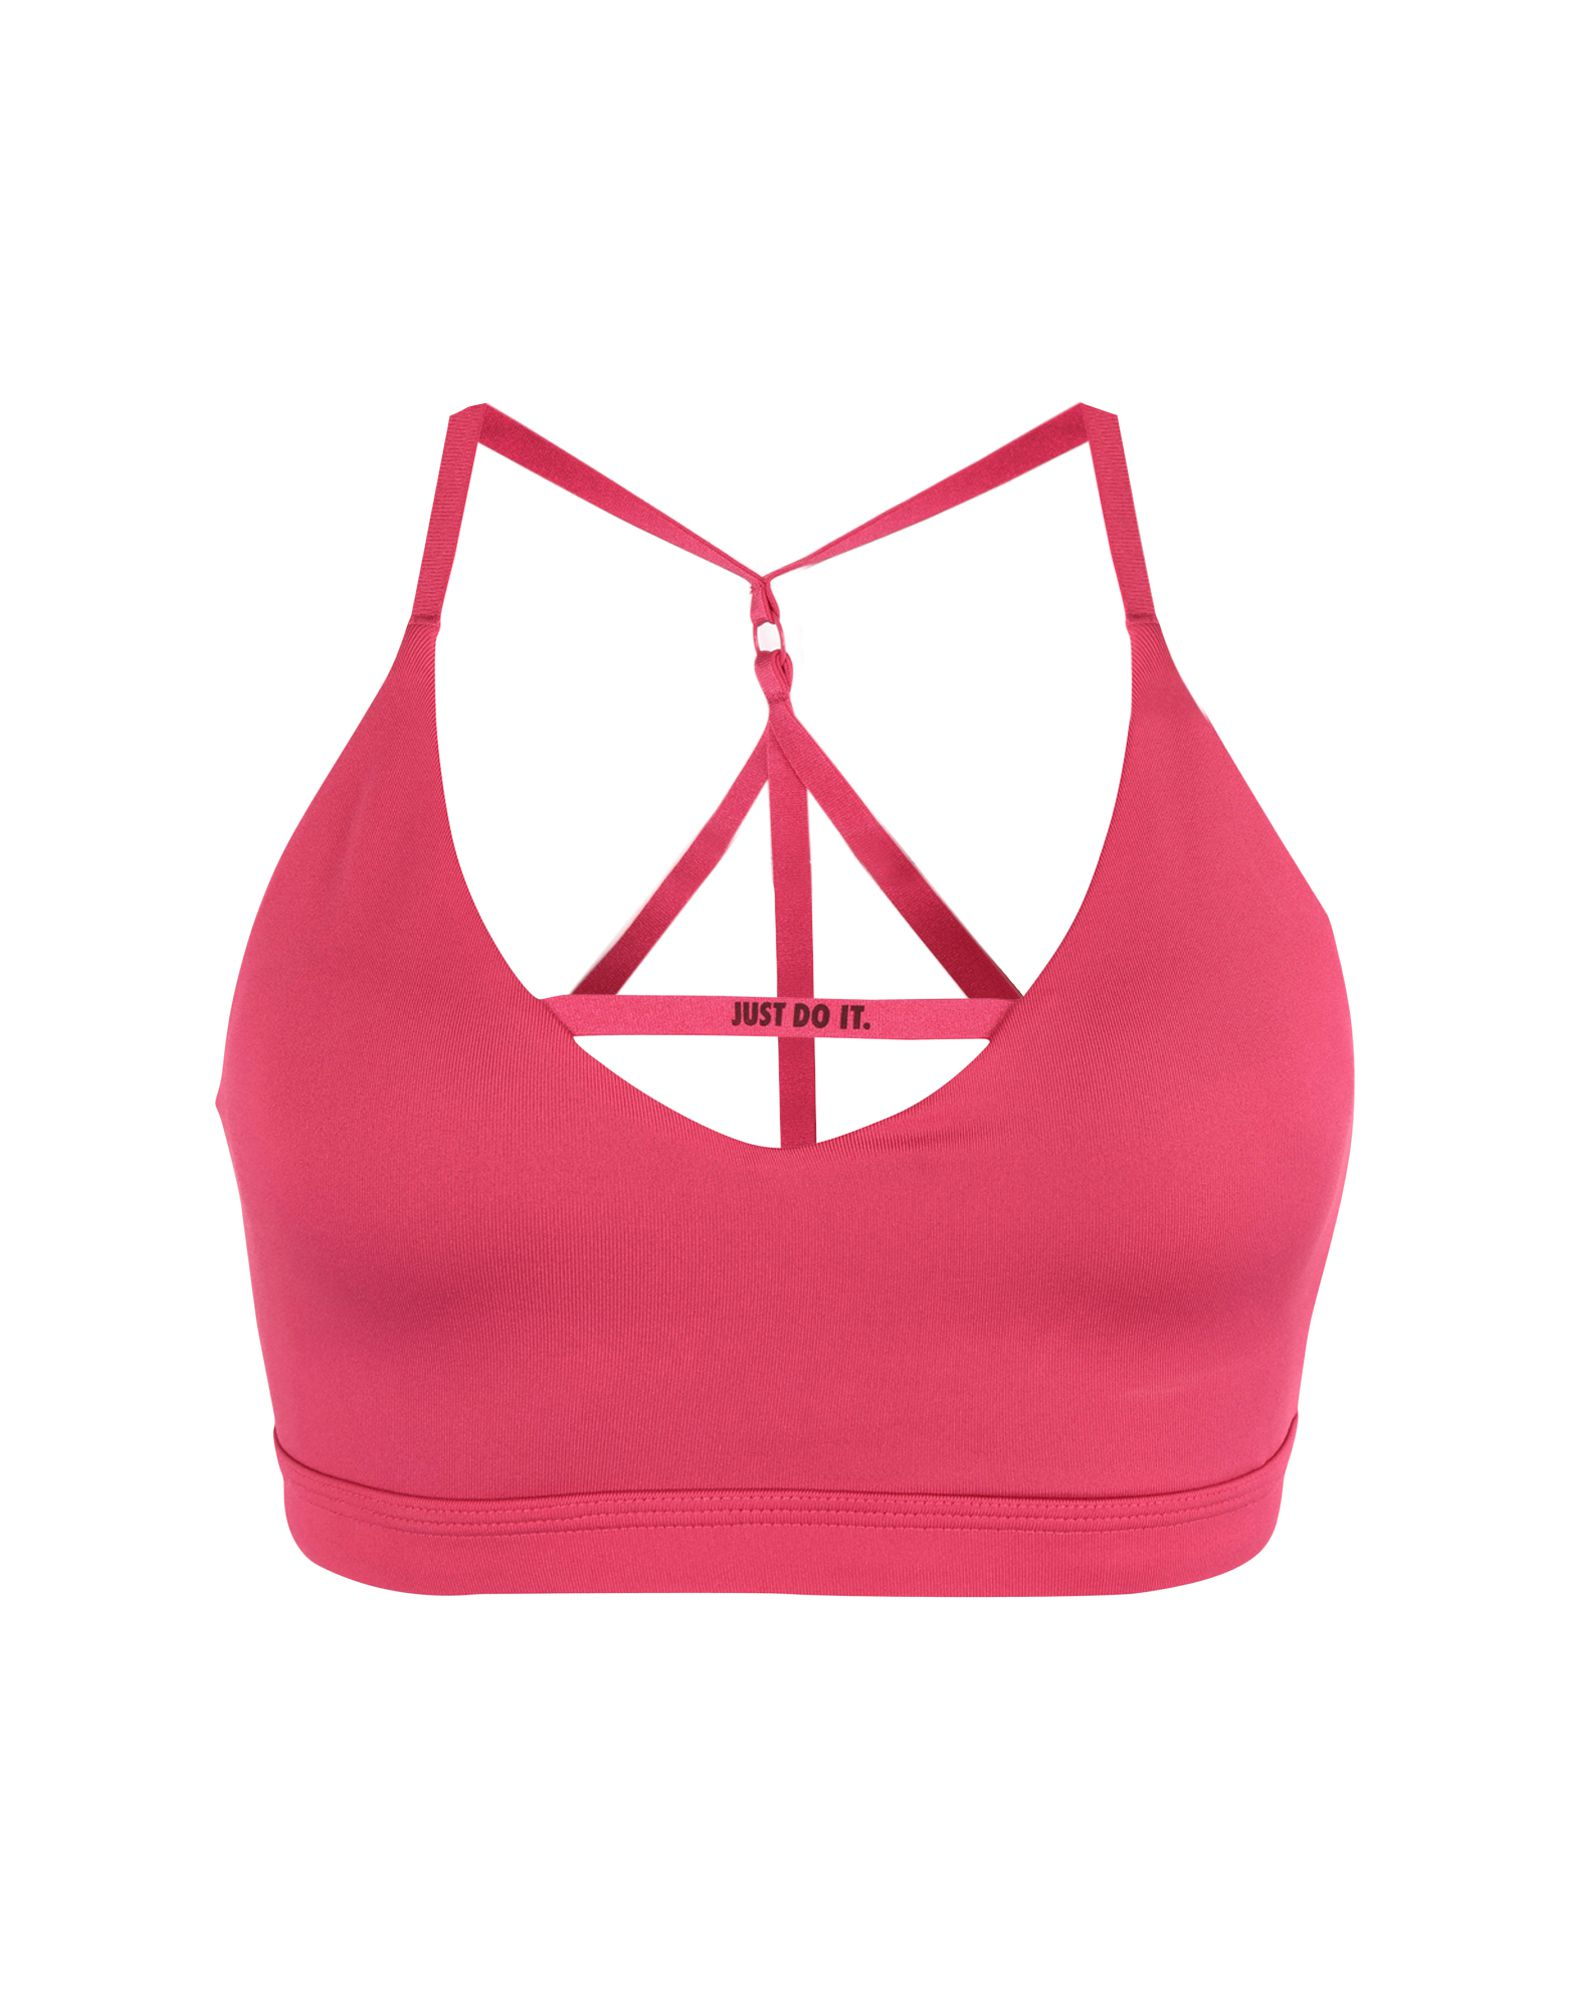 Bra E Top Performance Nike  Indy Jdi Bra - damen - 12226803PJ